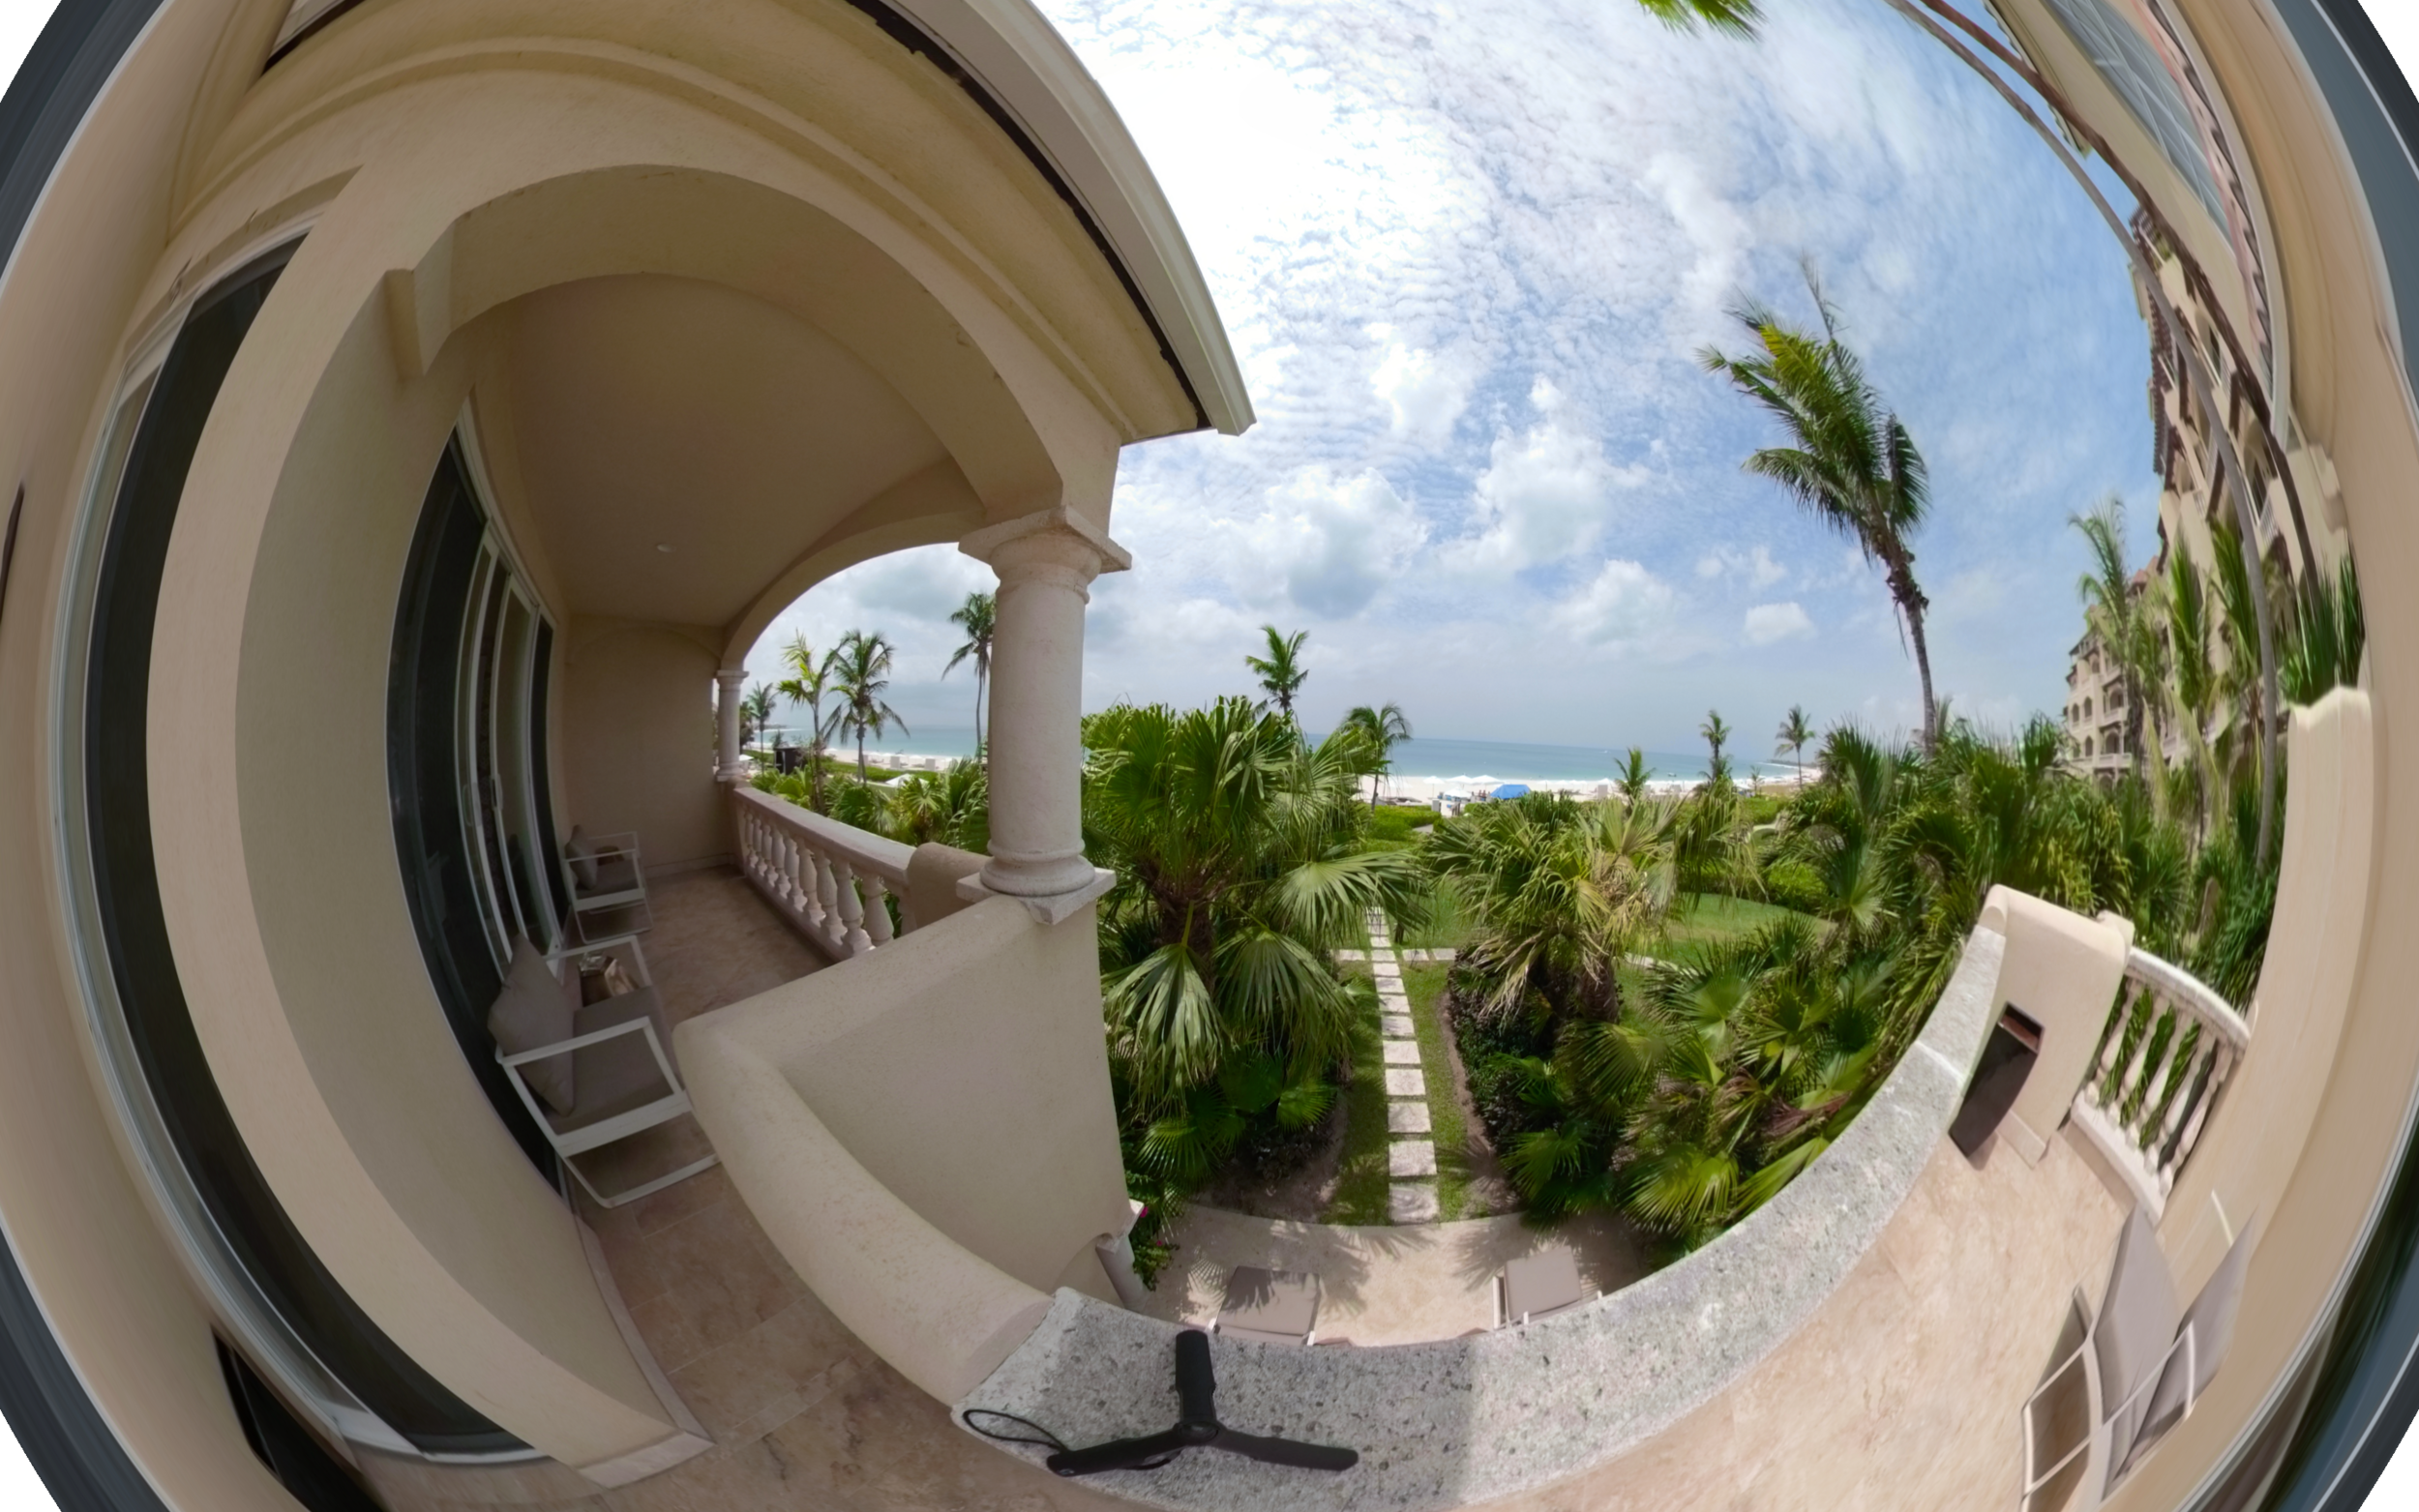 Grace Bay Balcony, Turks and Caicos - Click for VR 360